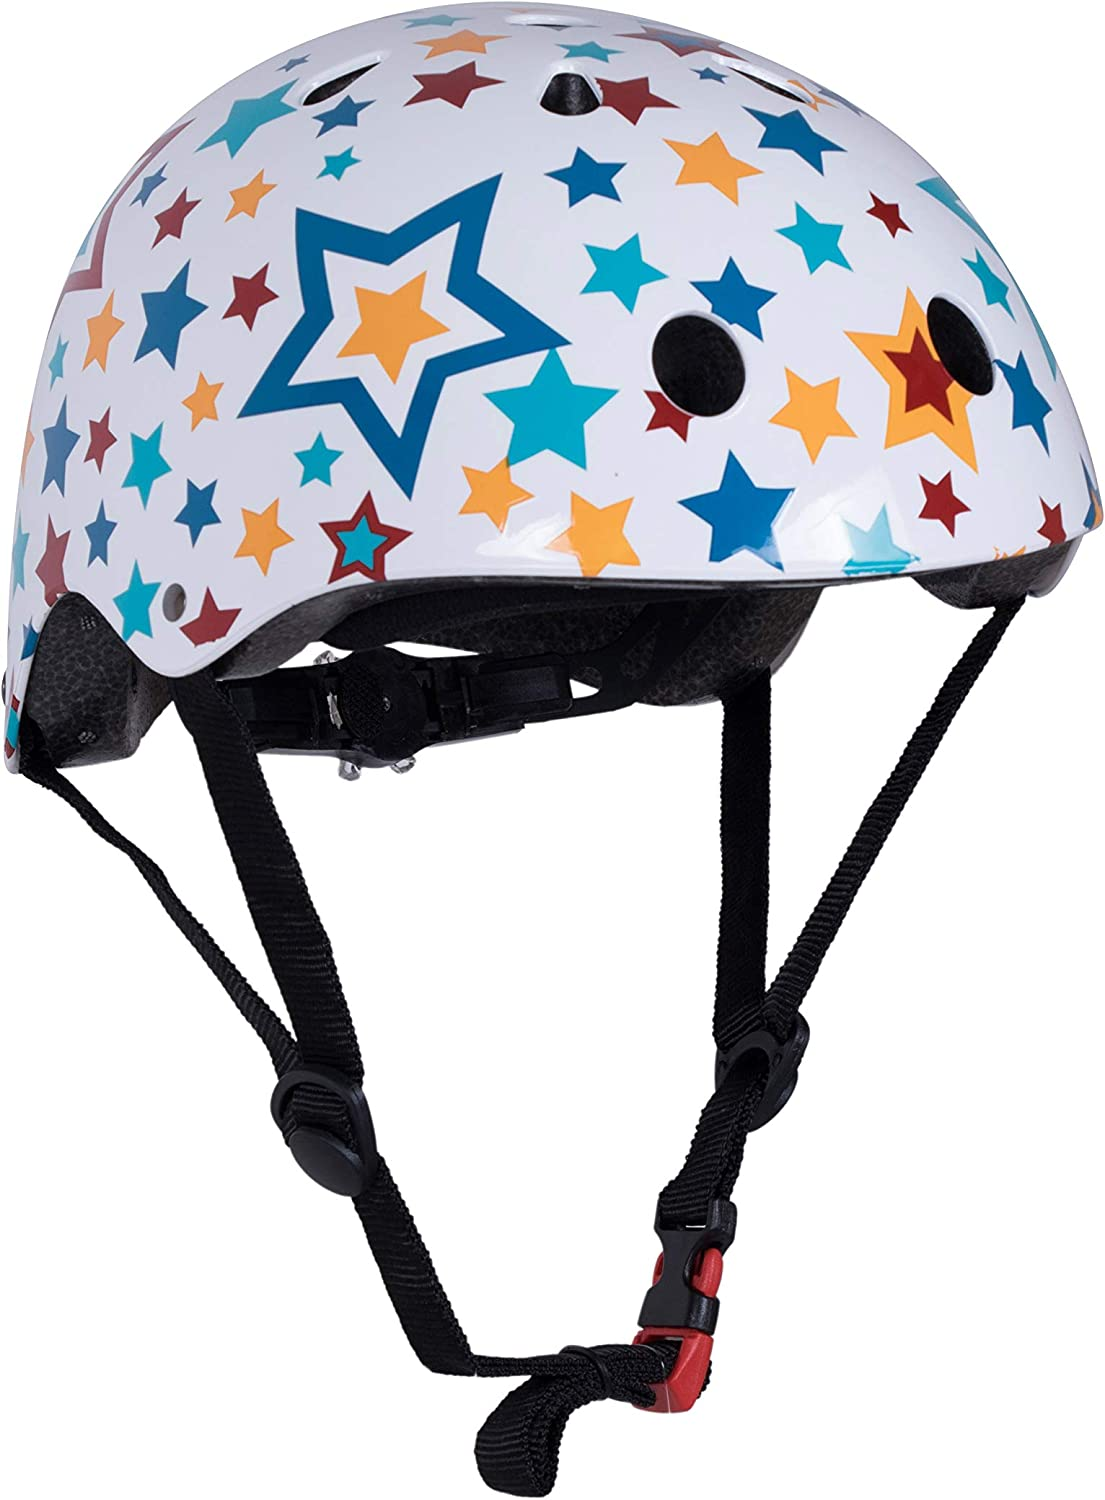 Kiddimoto Patterned Helmet with Dial Adjustment for Kids Children Boys and Girls Small and Medium